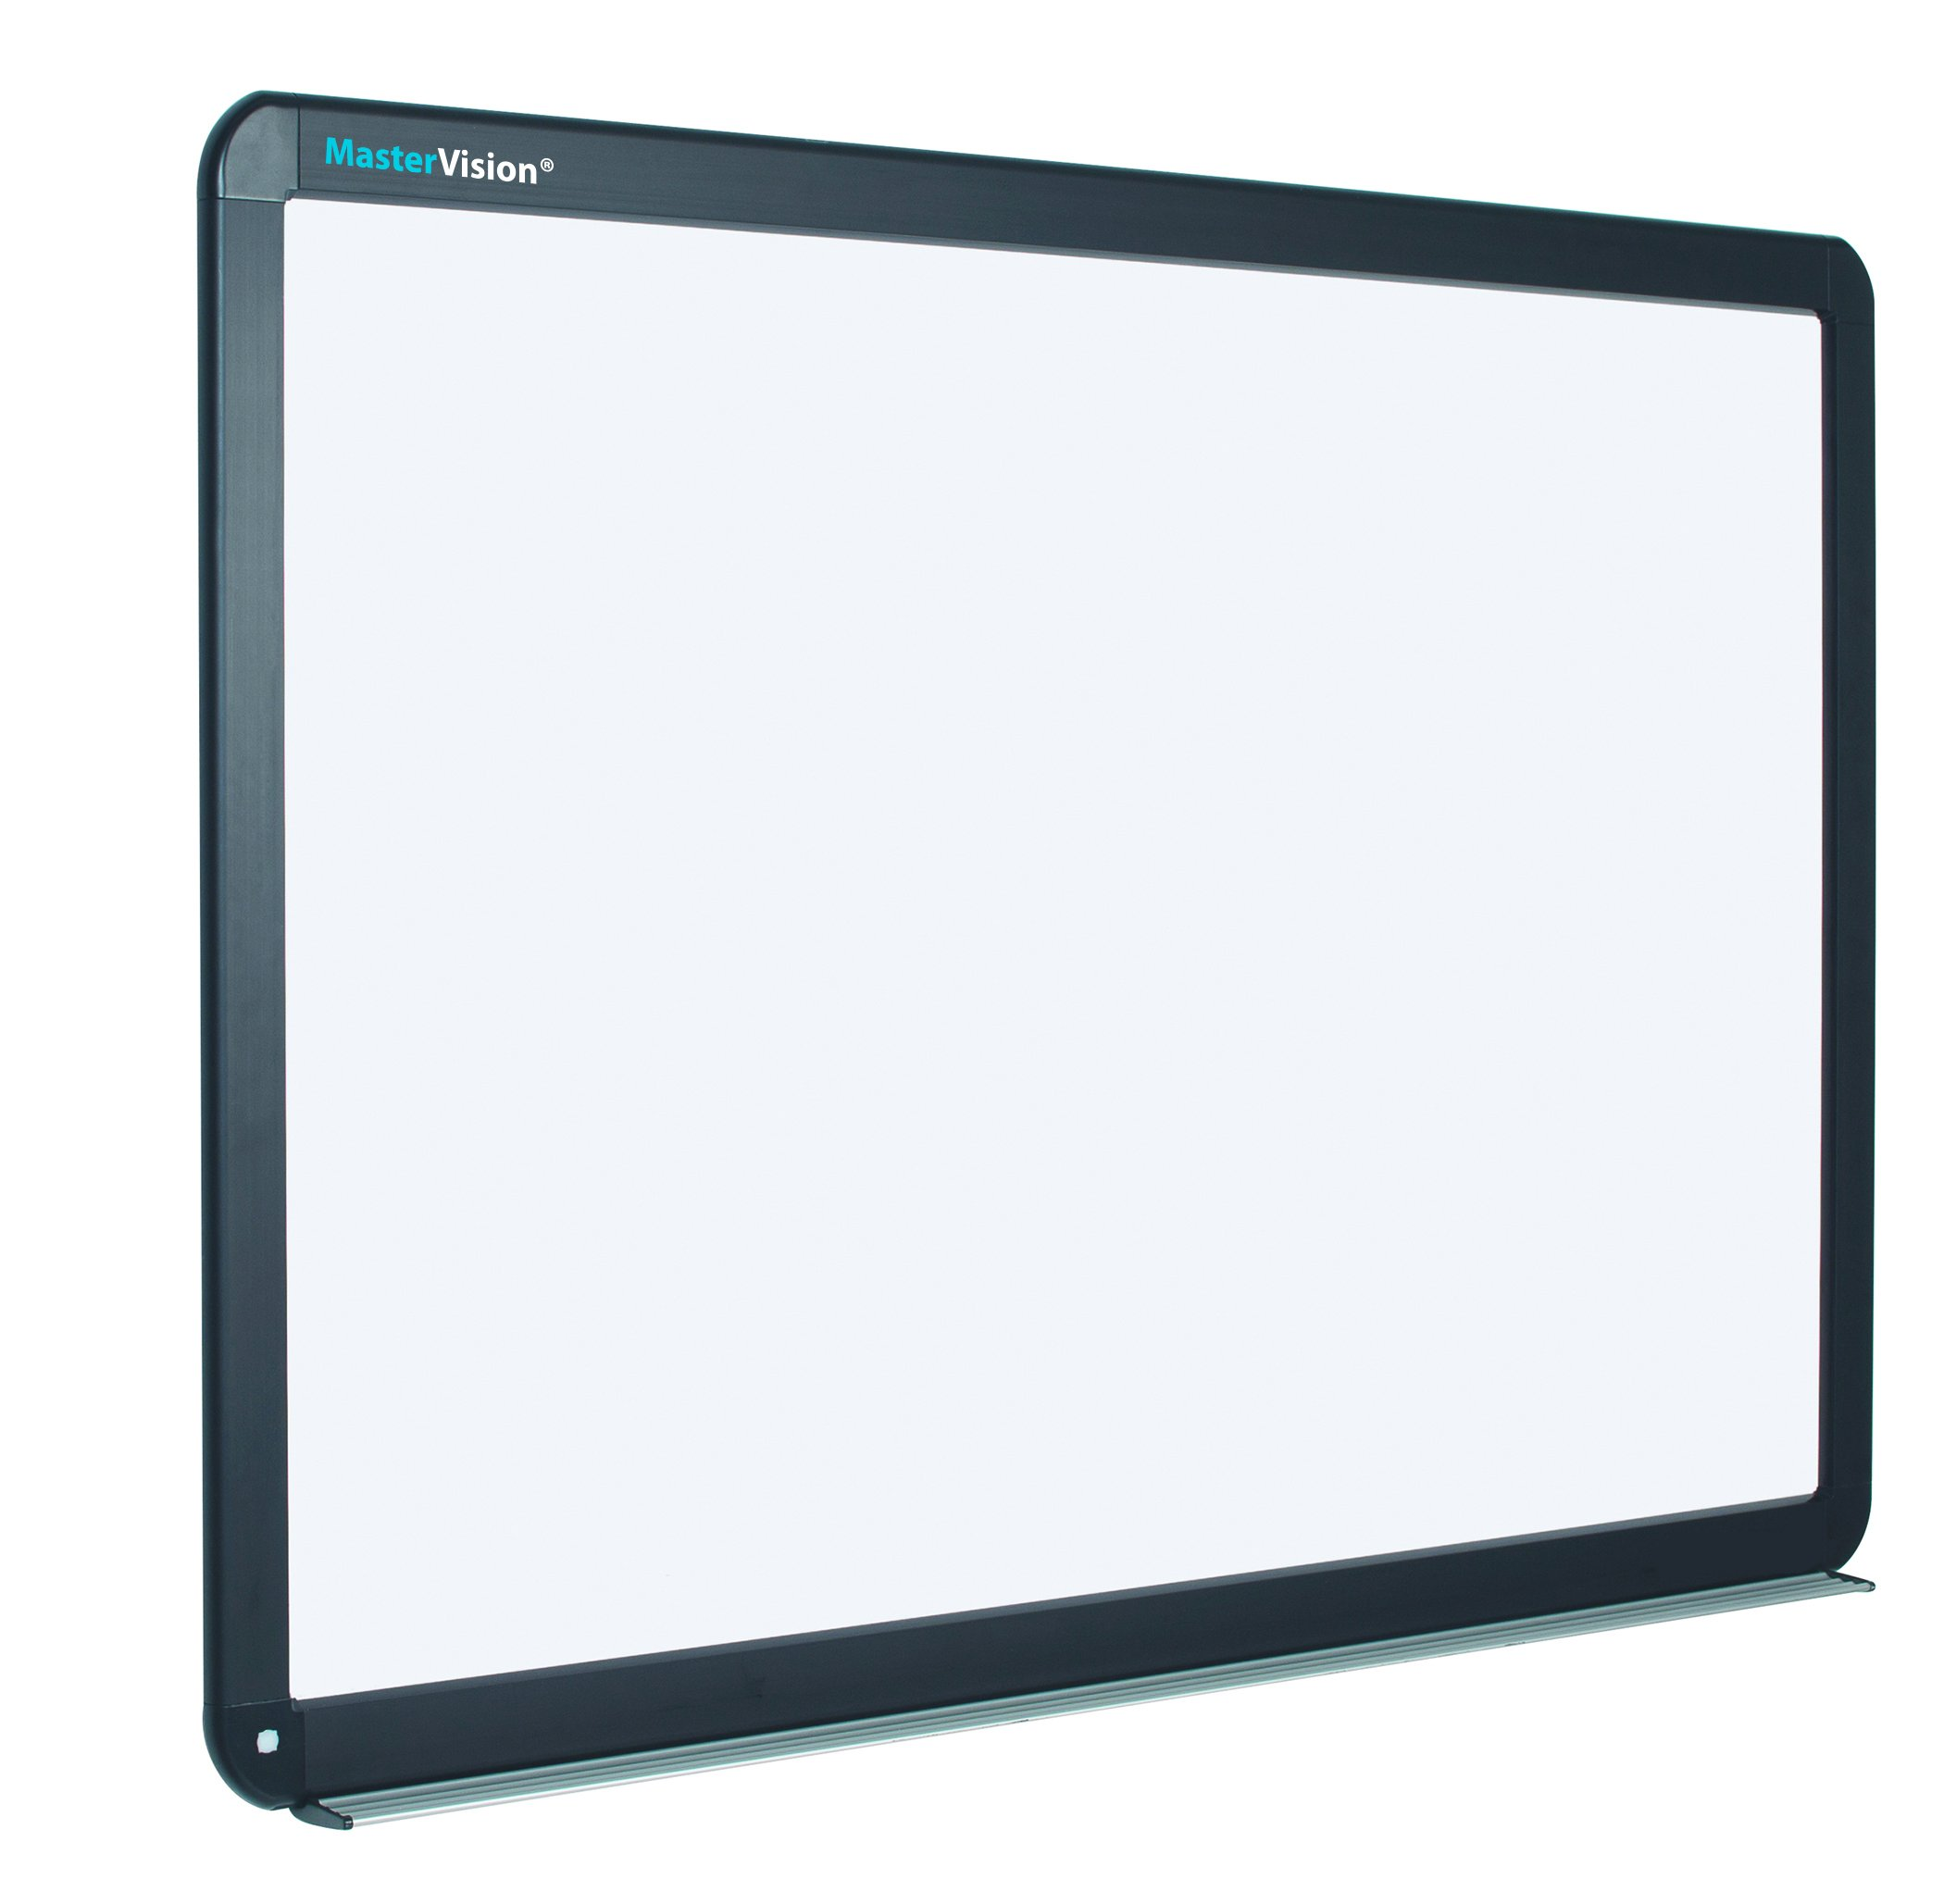 MasterVision Interactive Magnetic Dry Erase Board, 78-Inch Diagonal, 70'' x 52'' x 4.2'', Black (BI1291800006)